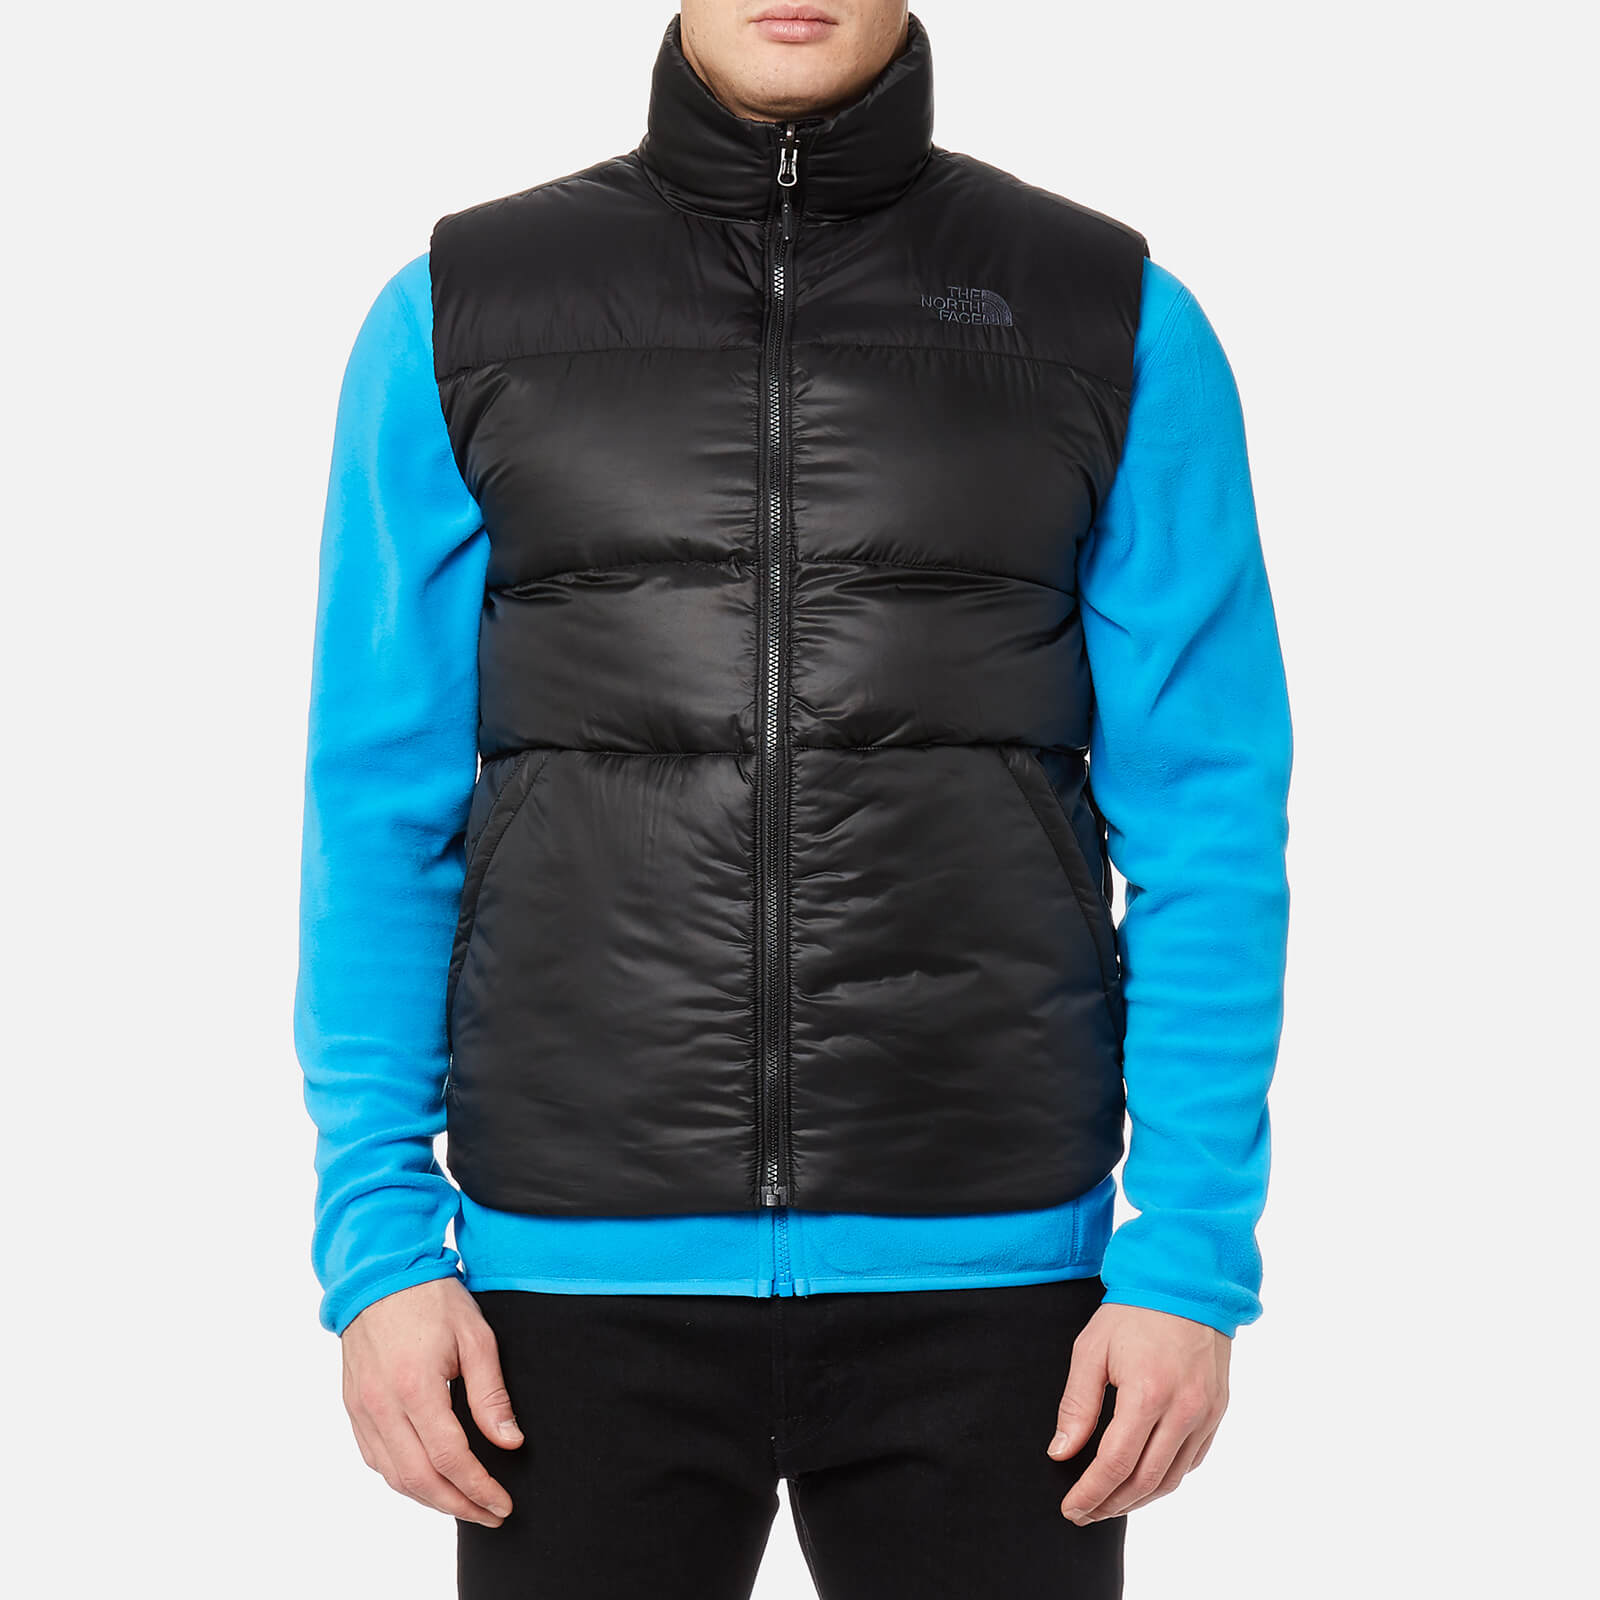 ad741cf8c The North Face Men's Nuptse III Vest - TNF Black